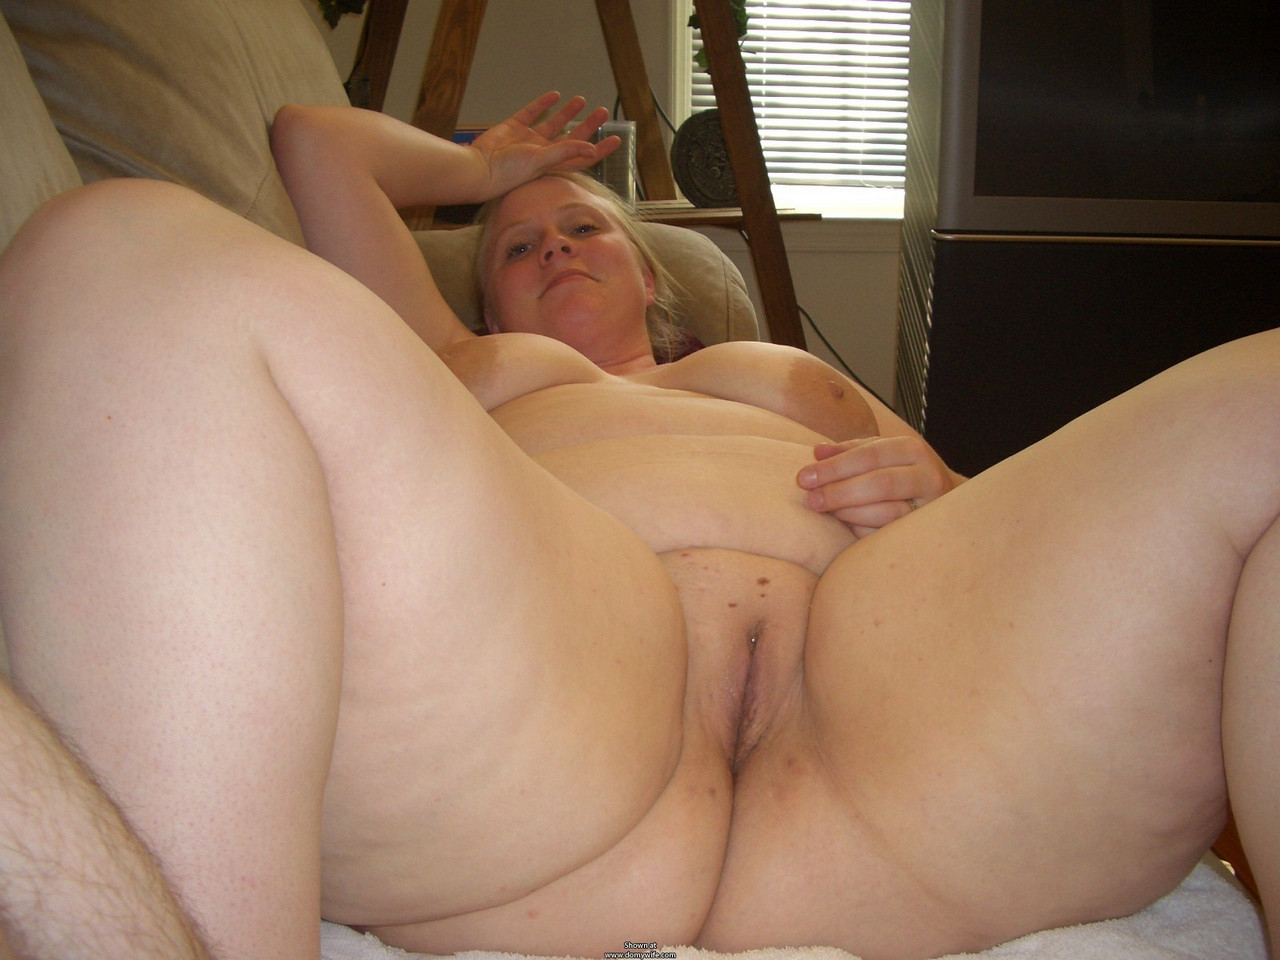 My sexy chubby wife porn My Sexy Fat Wife Nude Porn Galleries